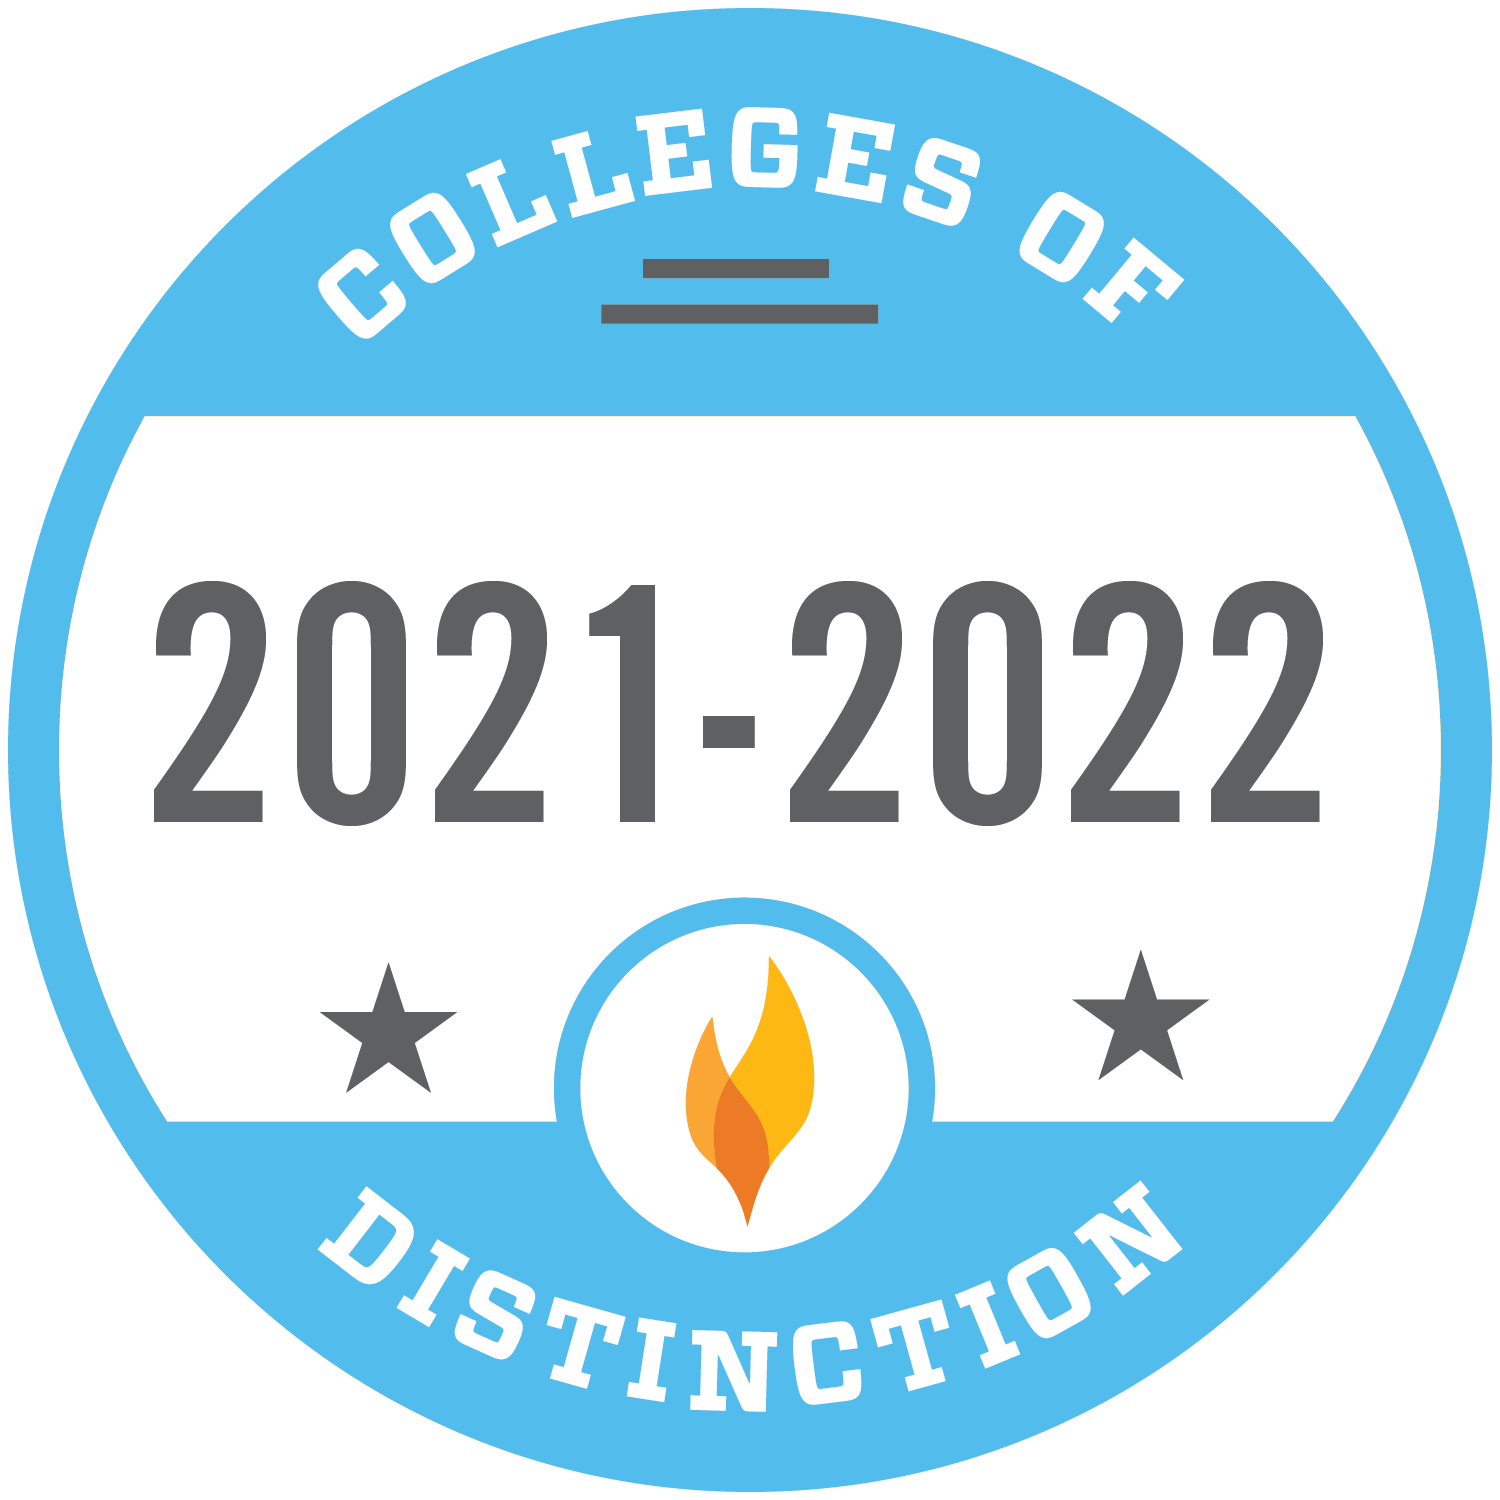 2021-2022 Colleges of Distinction